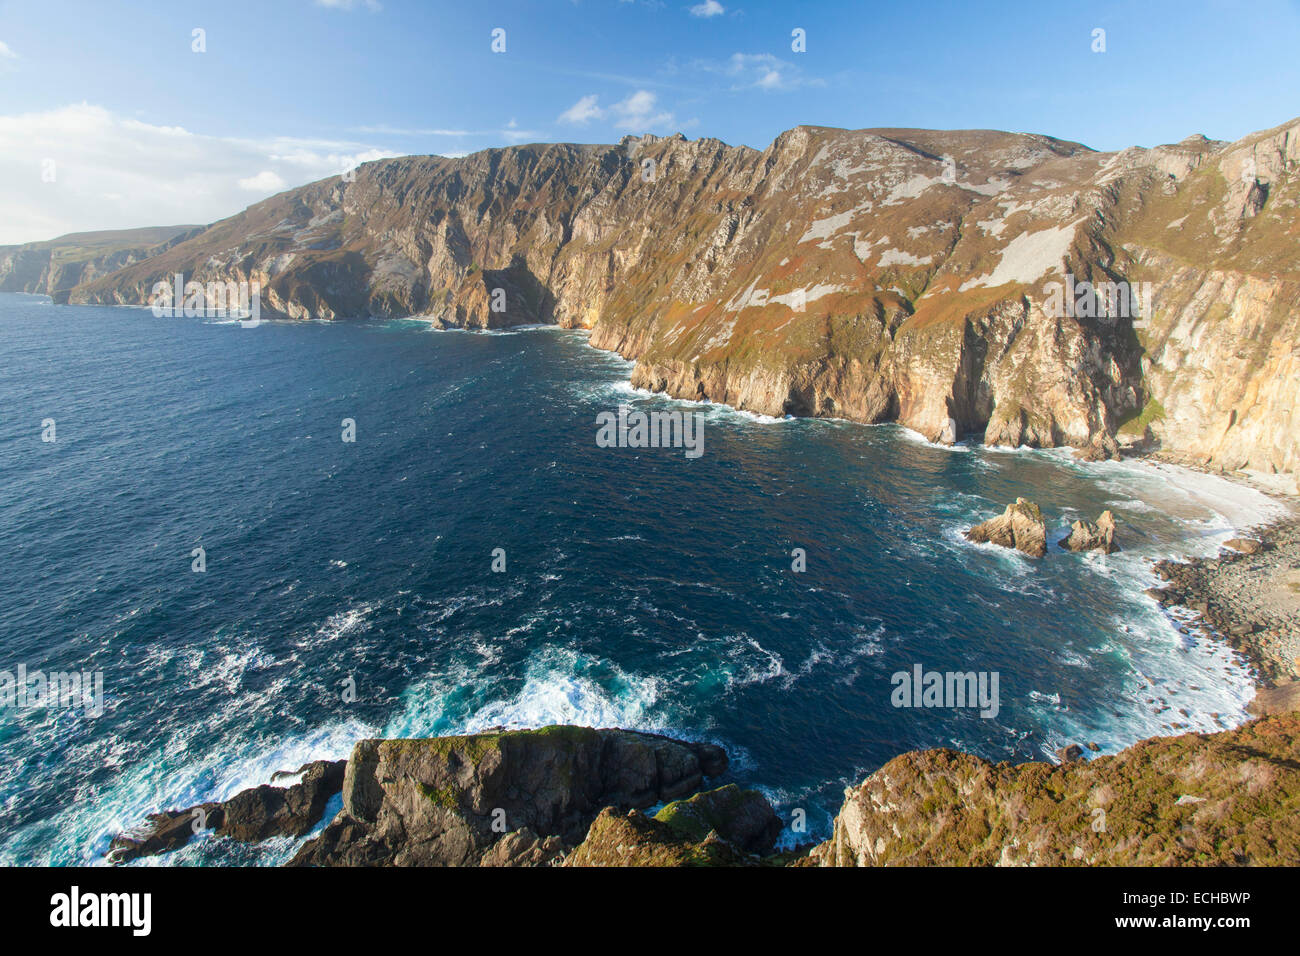 The Slieve League cliffs from Bunglass, County Donegal, Ireland. - Stock Image